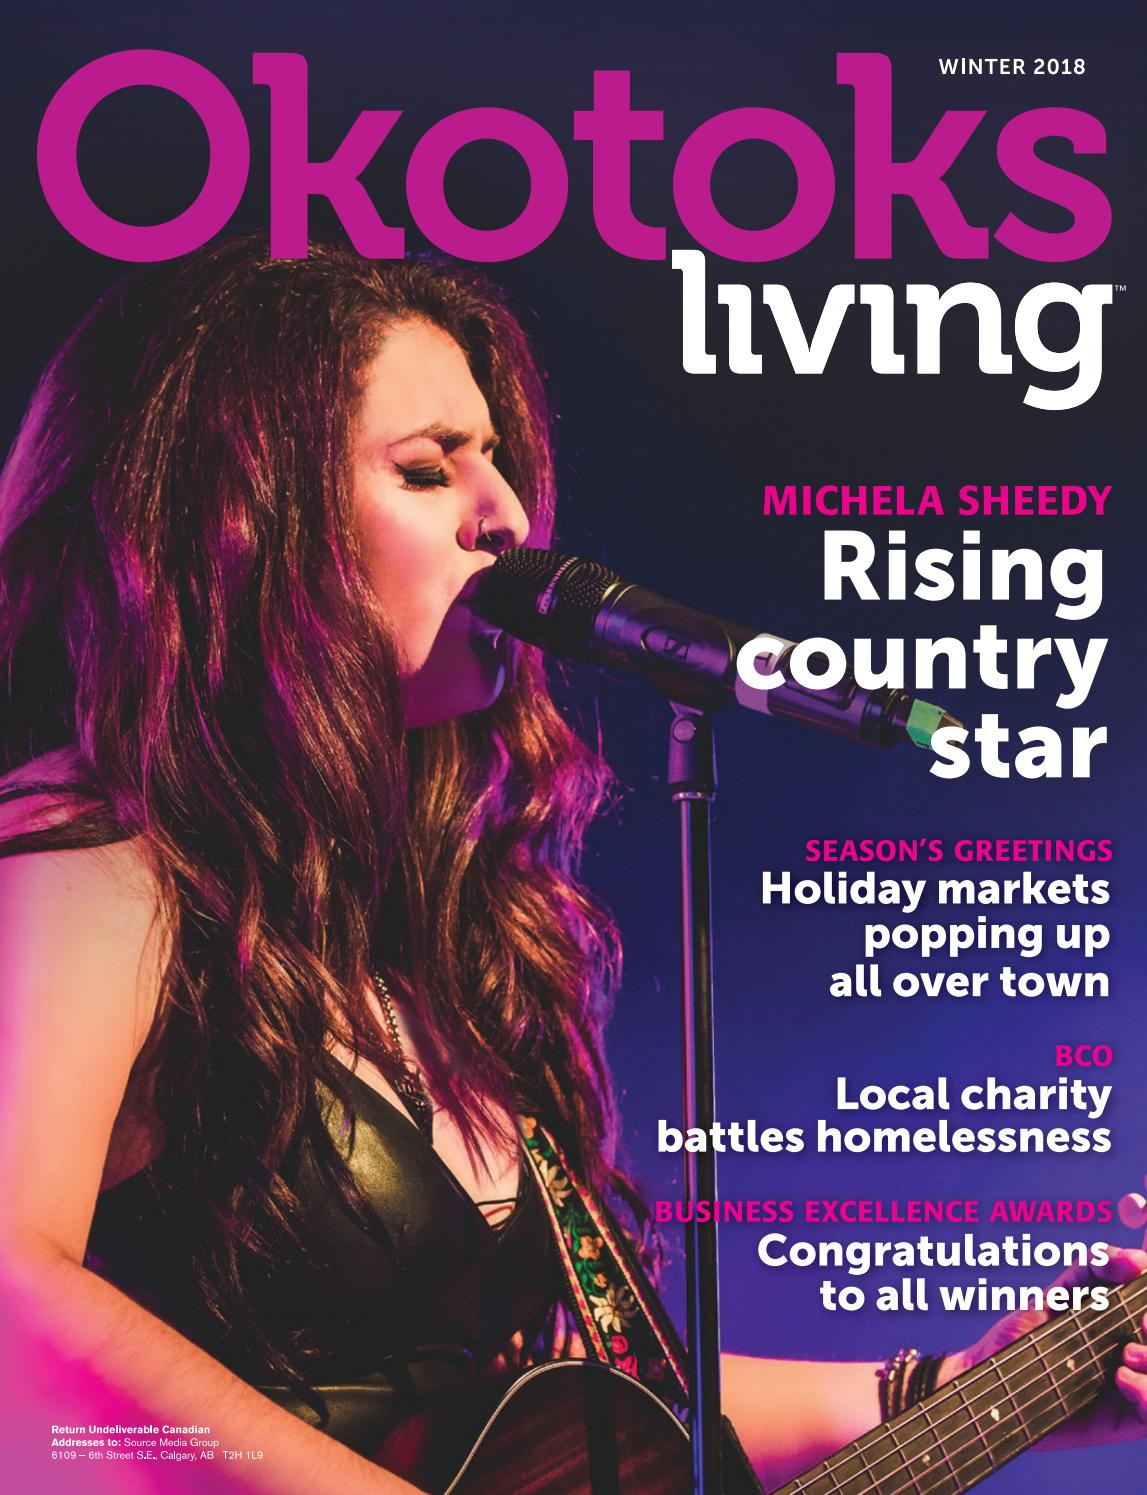 Okotoks Living - Winter 2018 Issue